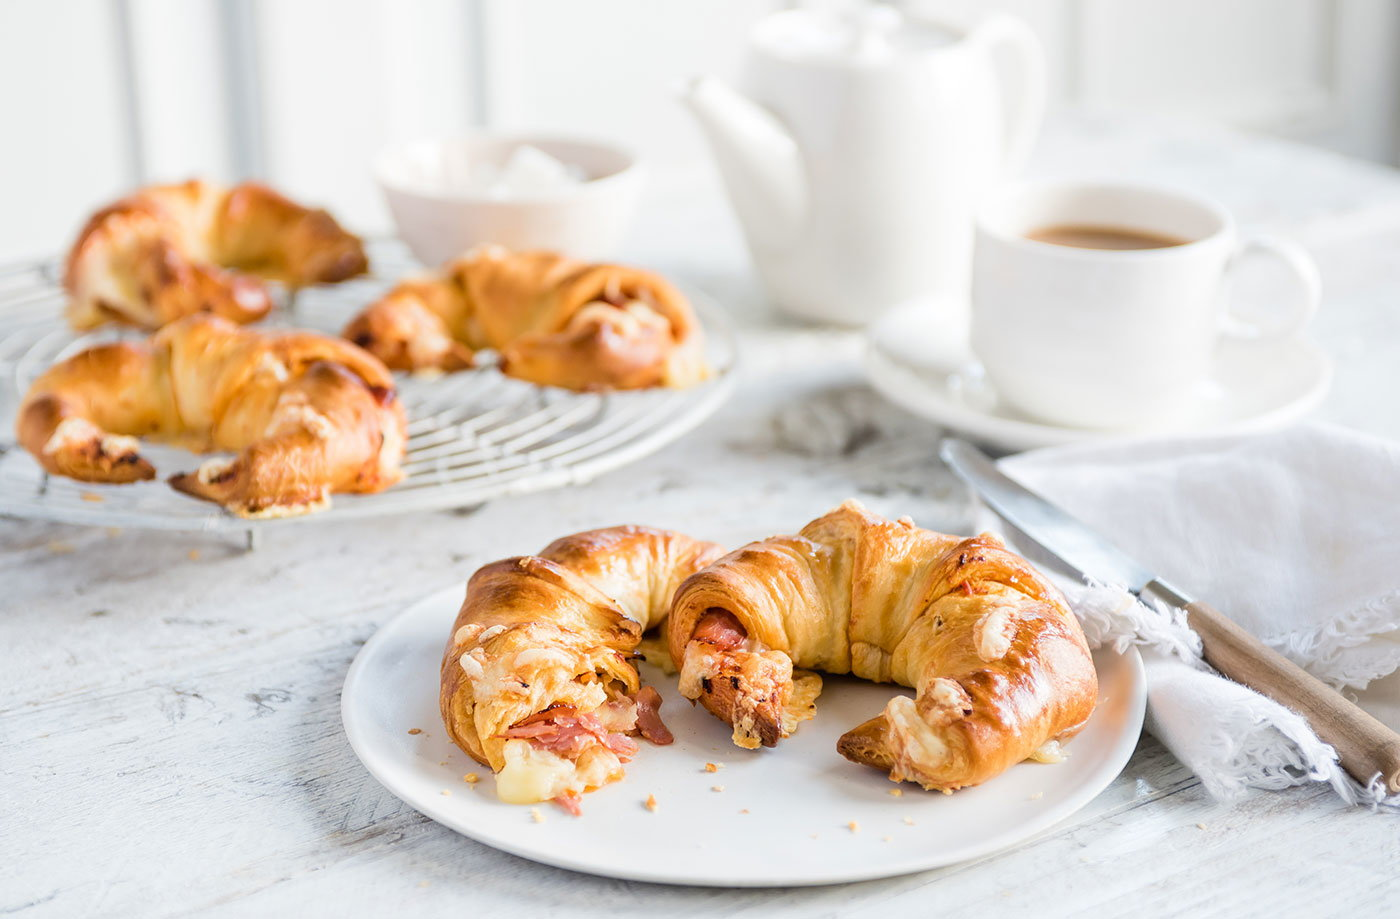 Cheese, sundried tomato and ham-stuffed croissants recipe